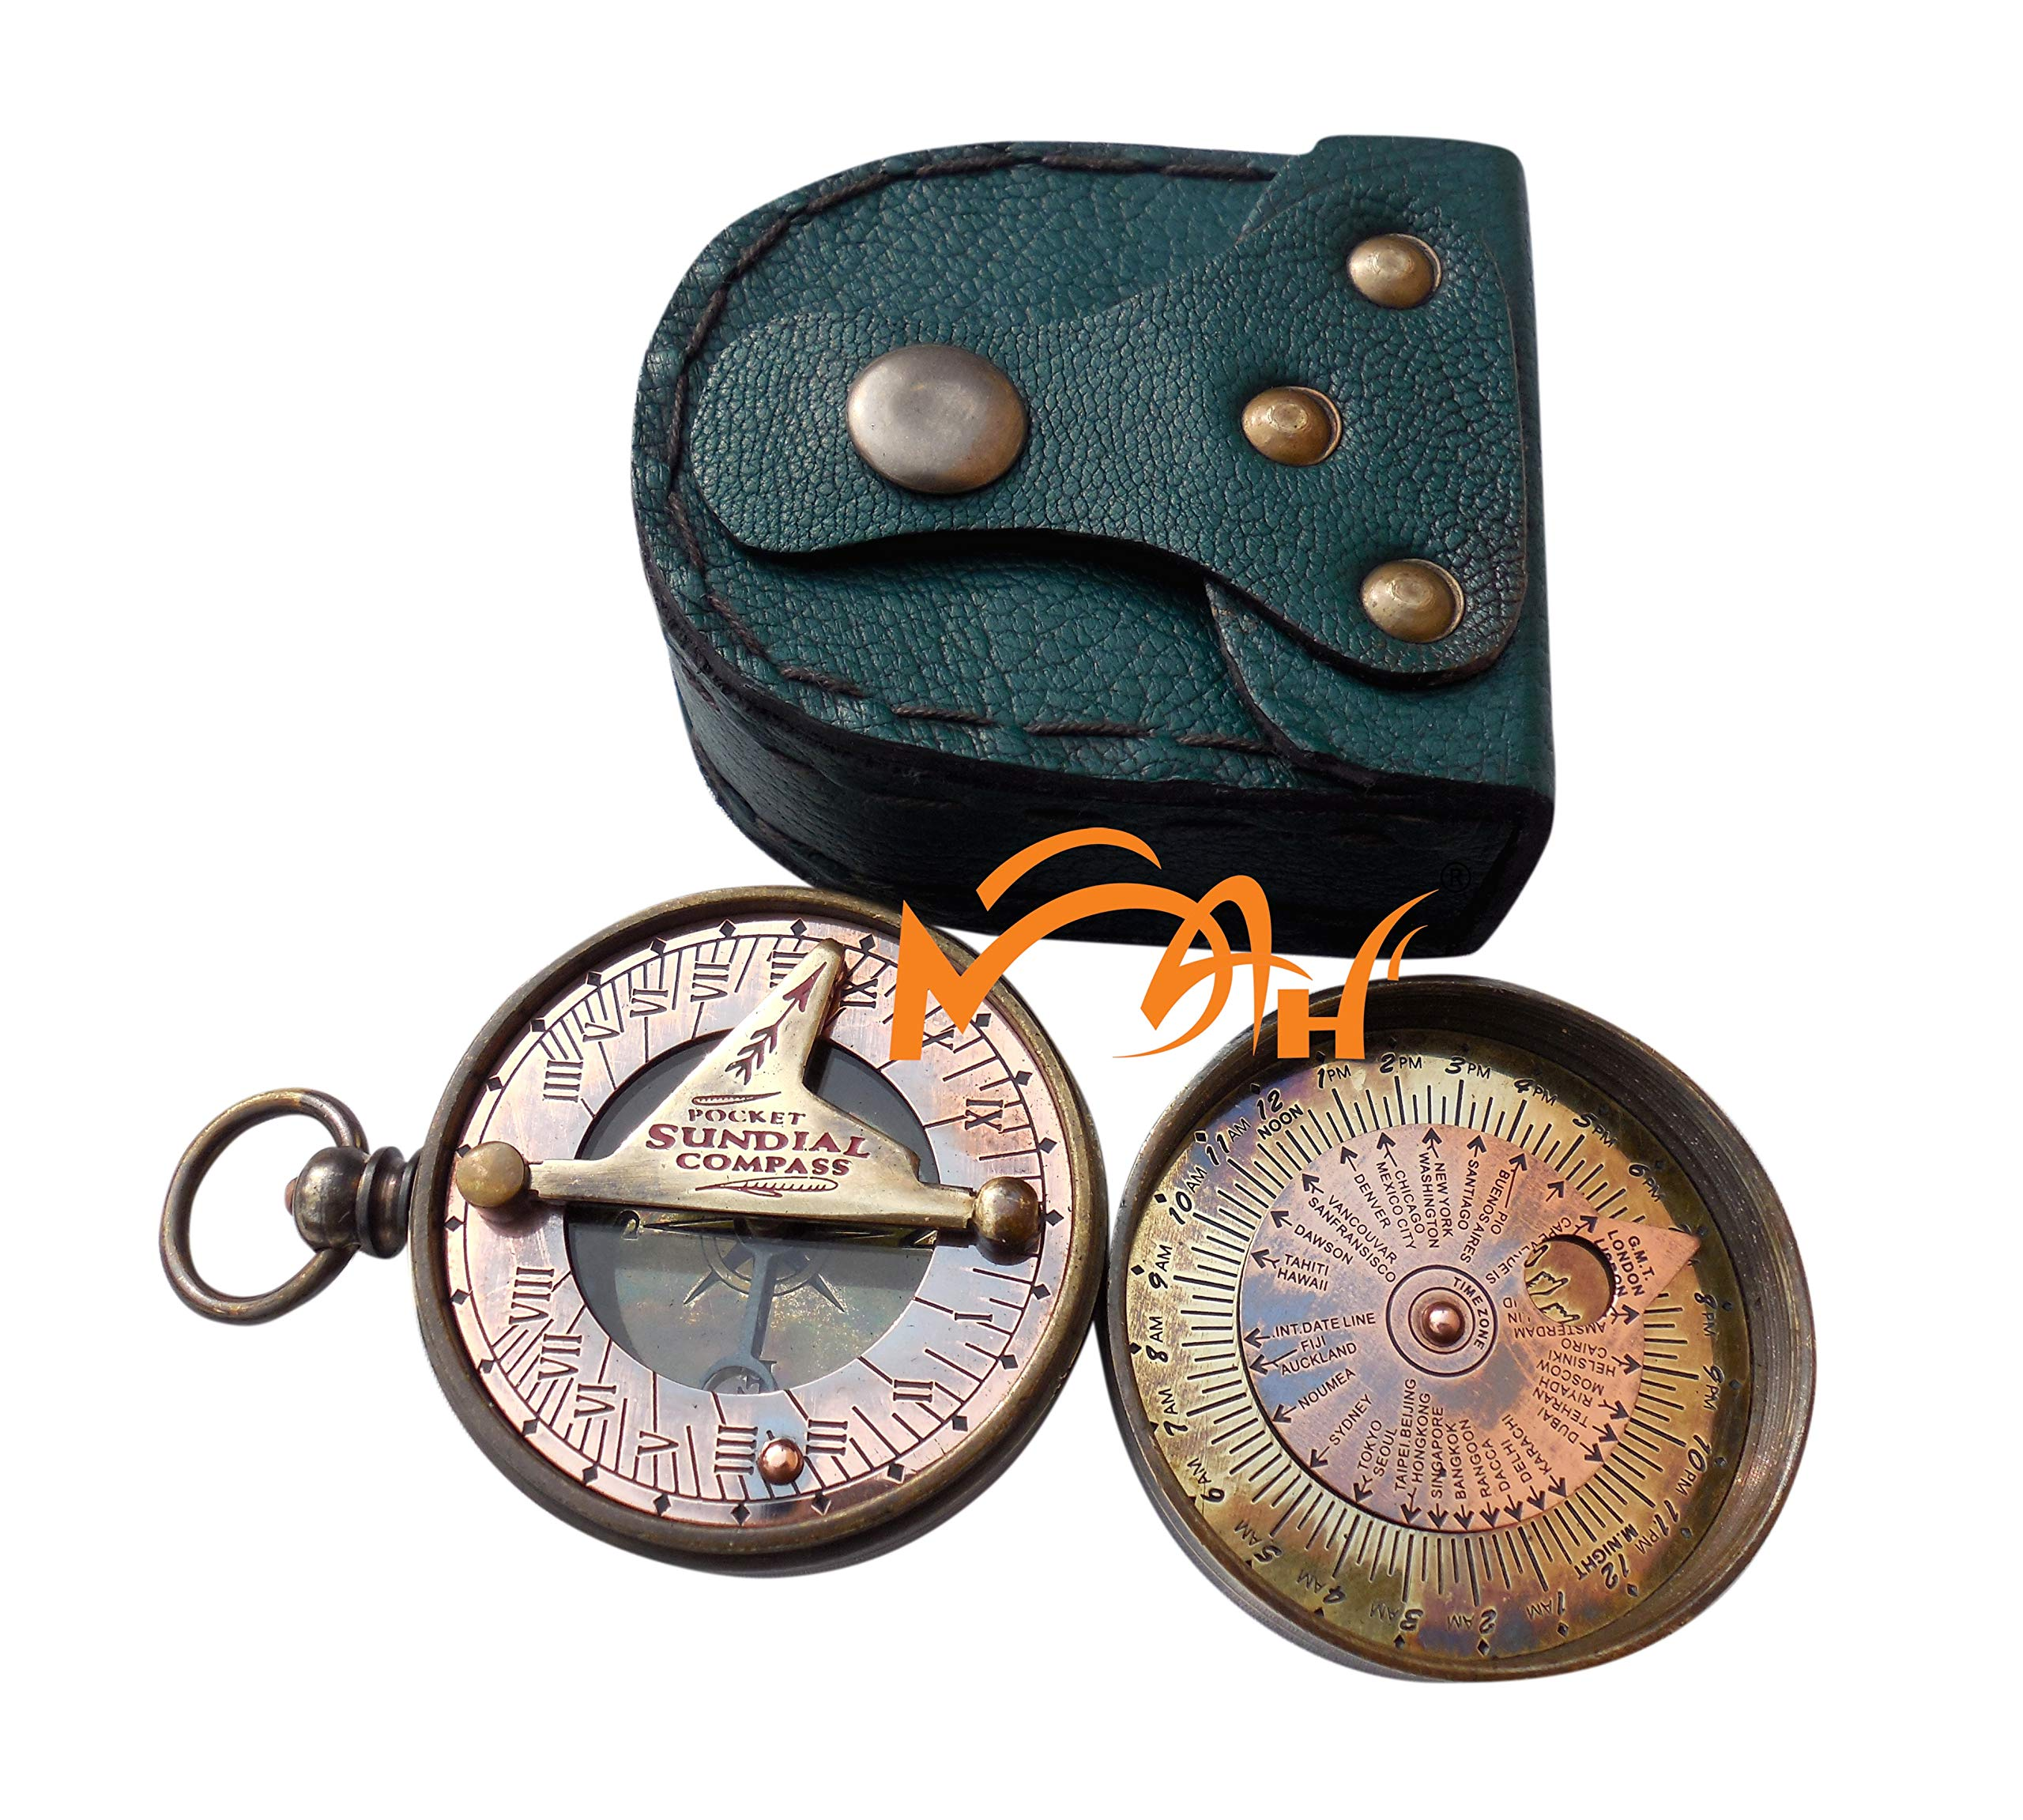 MAH Pocket Sundial Compass, Both Side Work on the Bird with Stamped Leather case. C-3170-1 by MAH